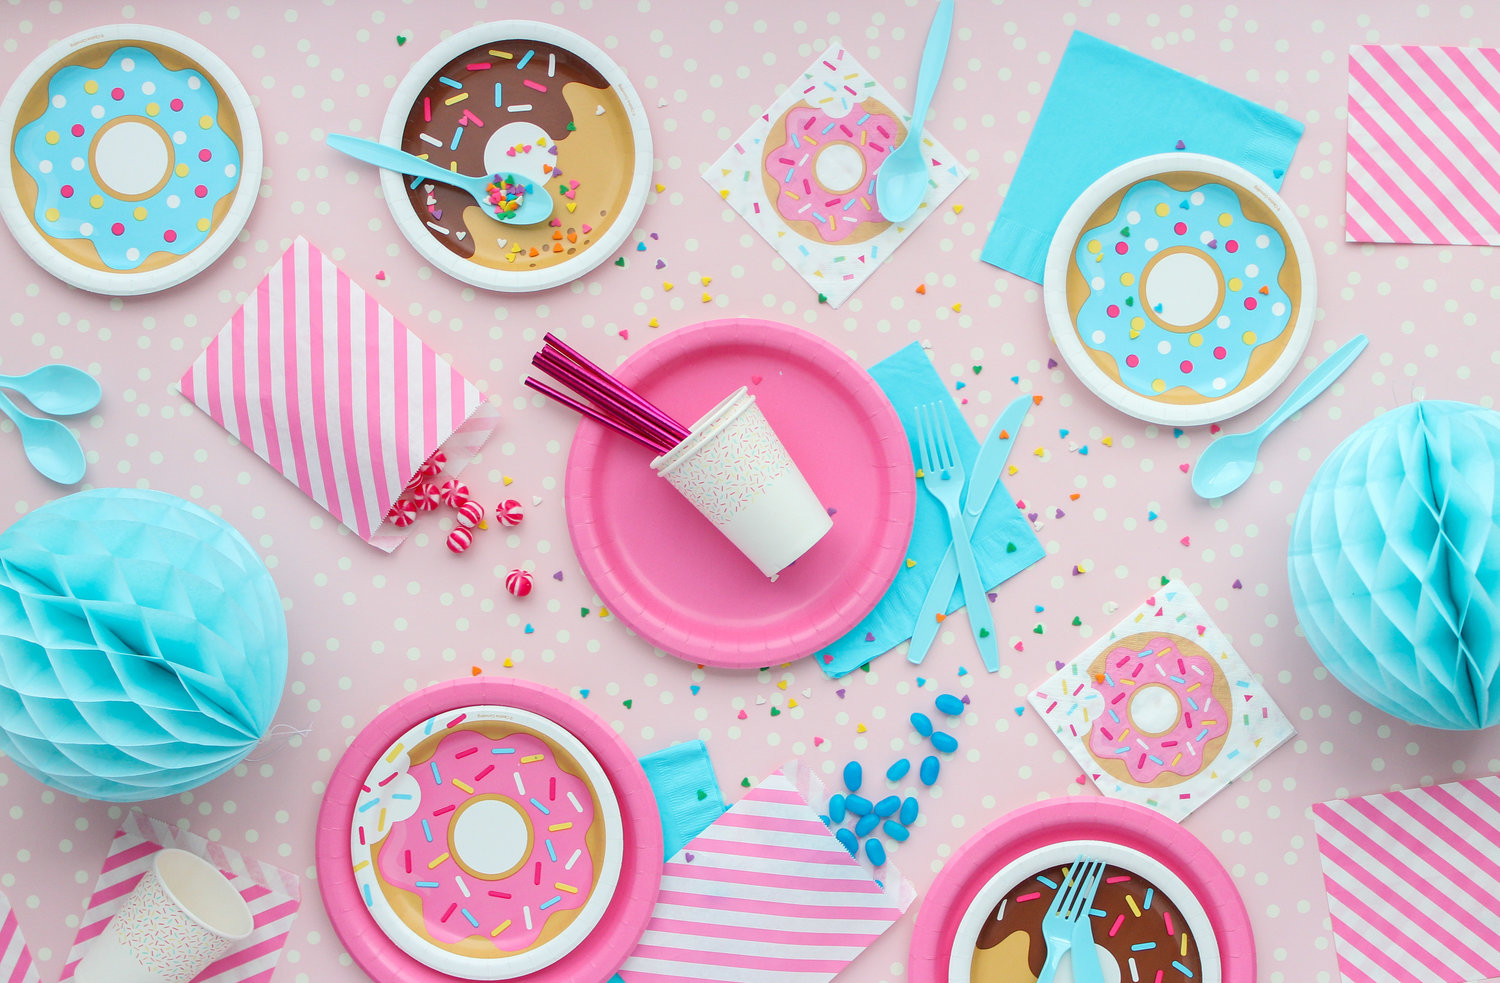 Colourful donut themed party supplies flatlay